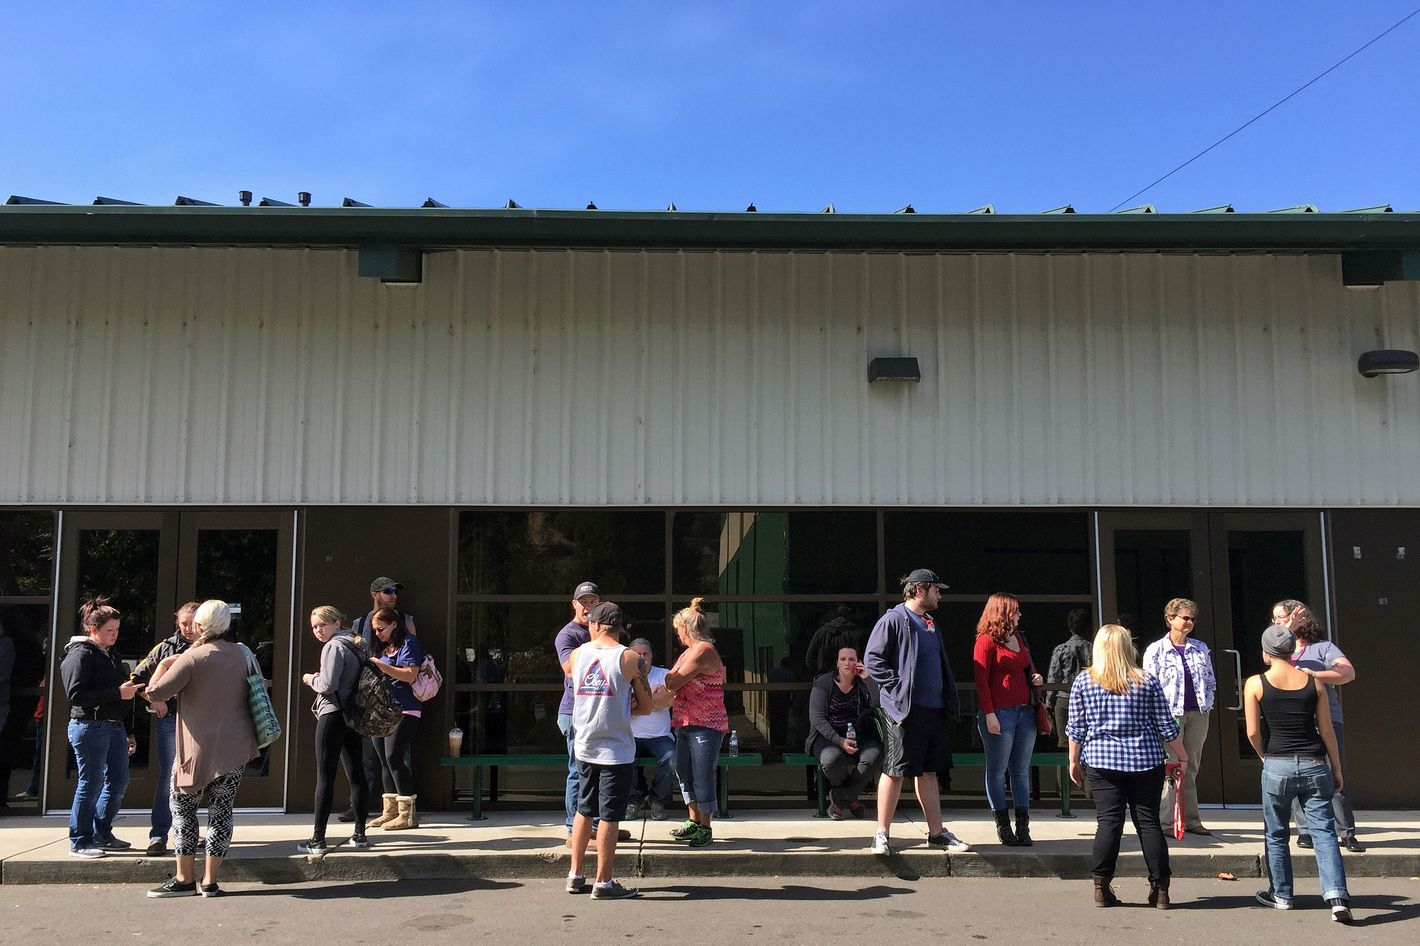 Watch UPDATED 10 Confirmed Dead in Oregon Community College Campus Shooting video